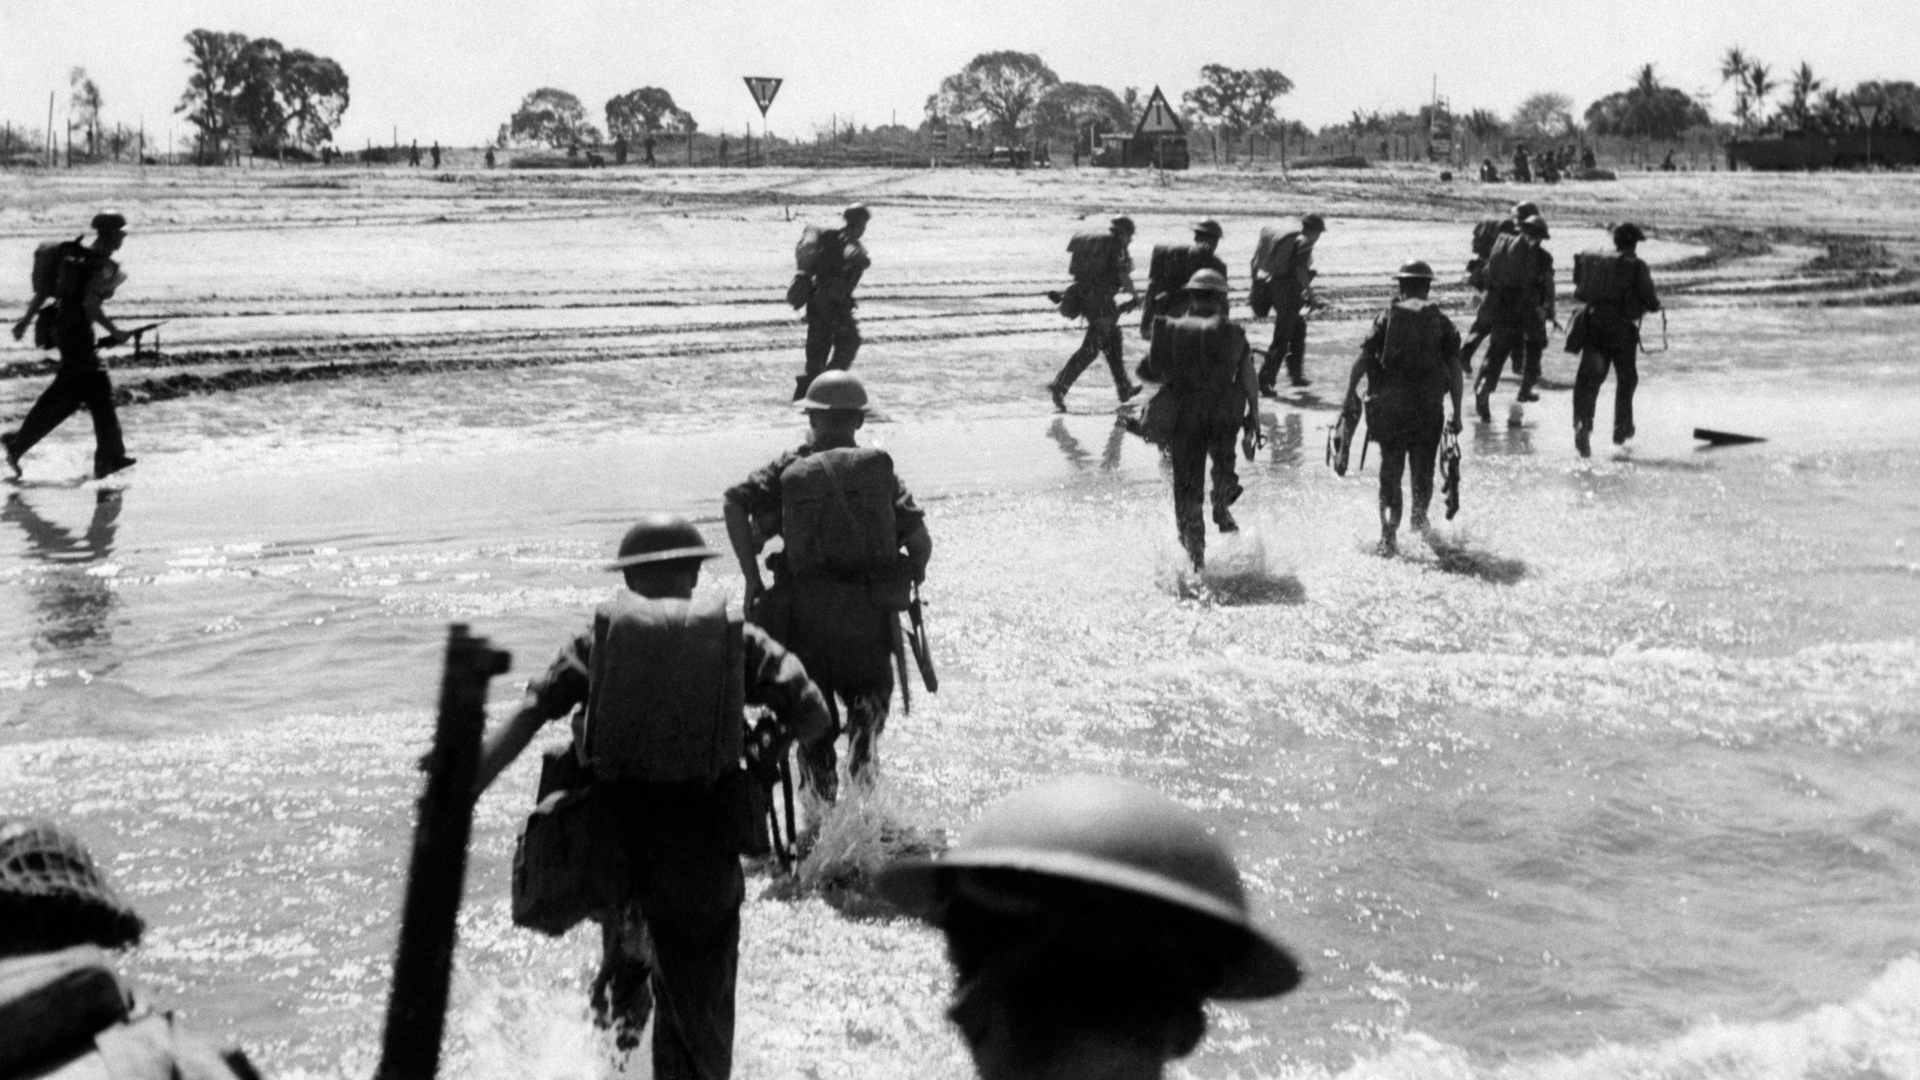 Allied troops run ashore after the amphibious assault on Japanese-held Ramree Island. (Credit: PA Images/Getty Images)